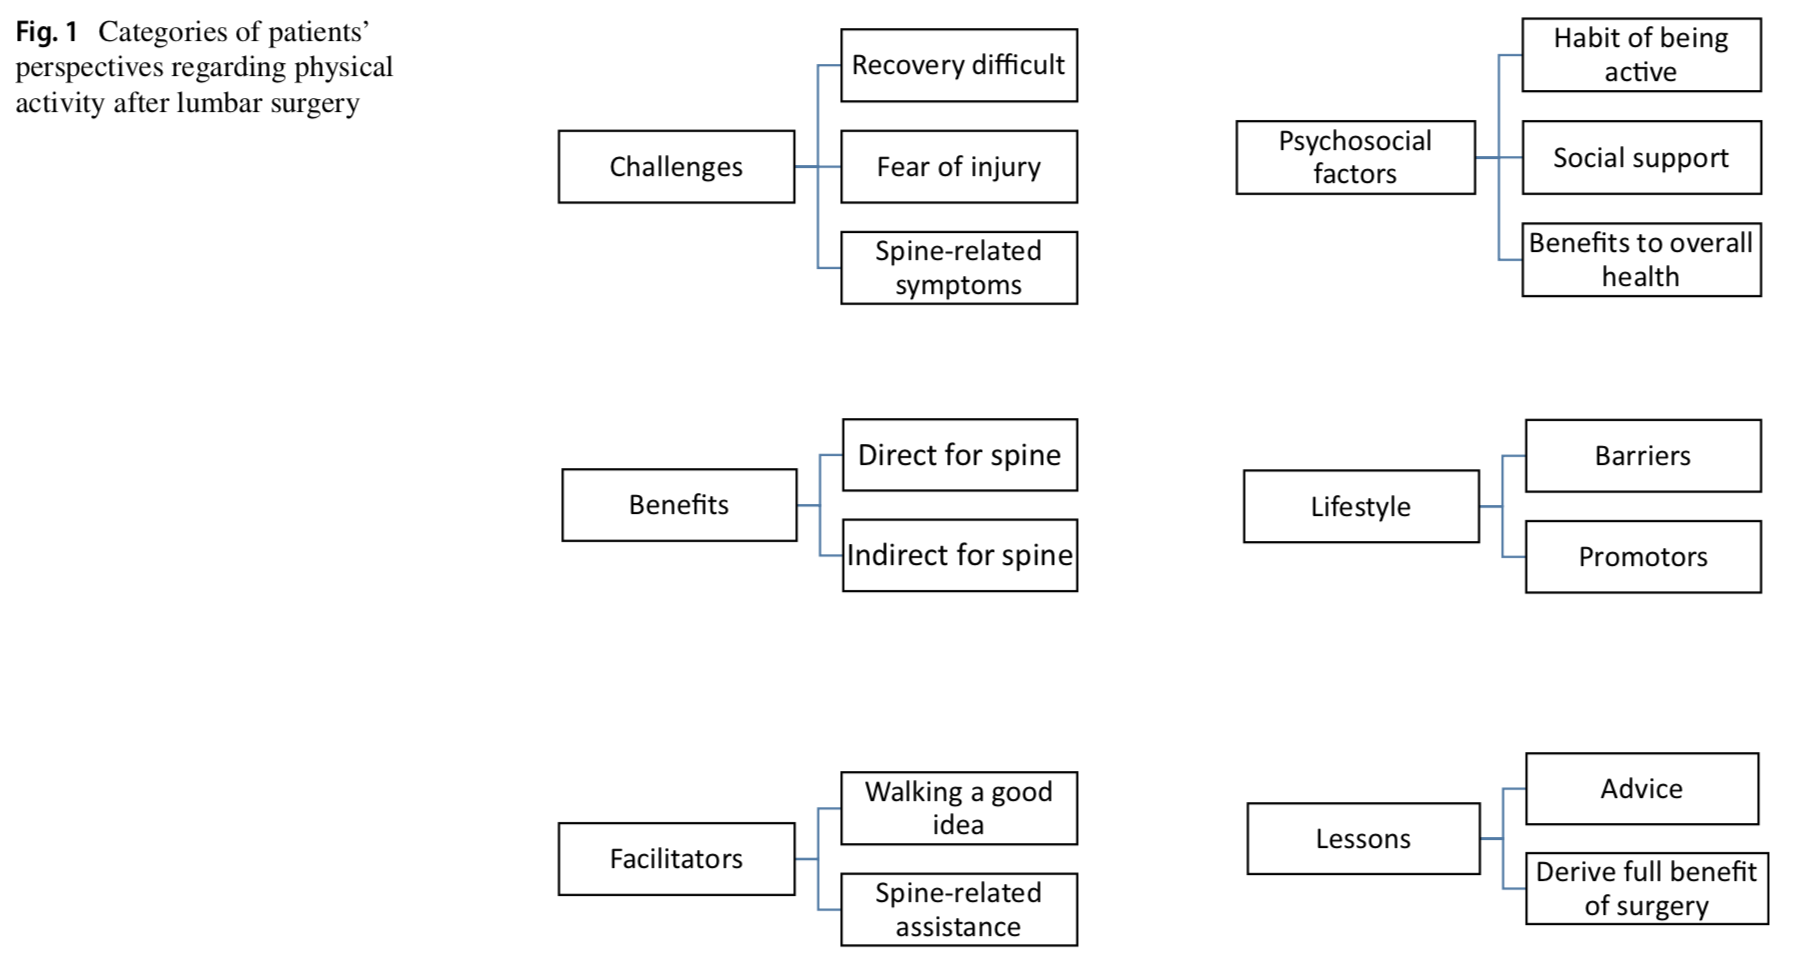 Qualitative assessment of patients' perspectives and willingness to improve healthy lifestyle physical activity after lumbar surgery